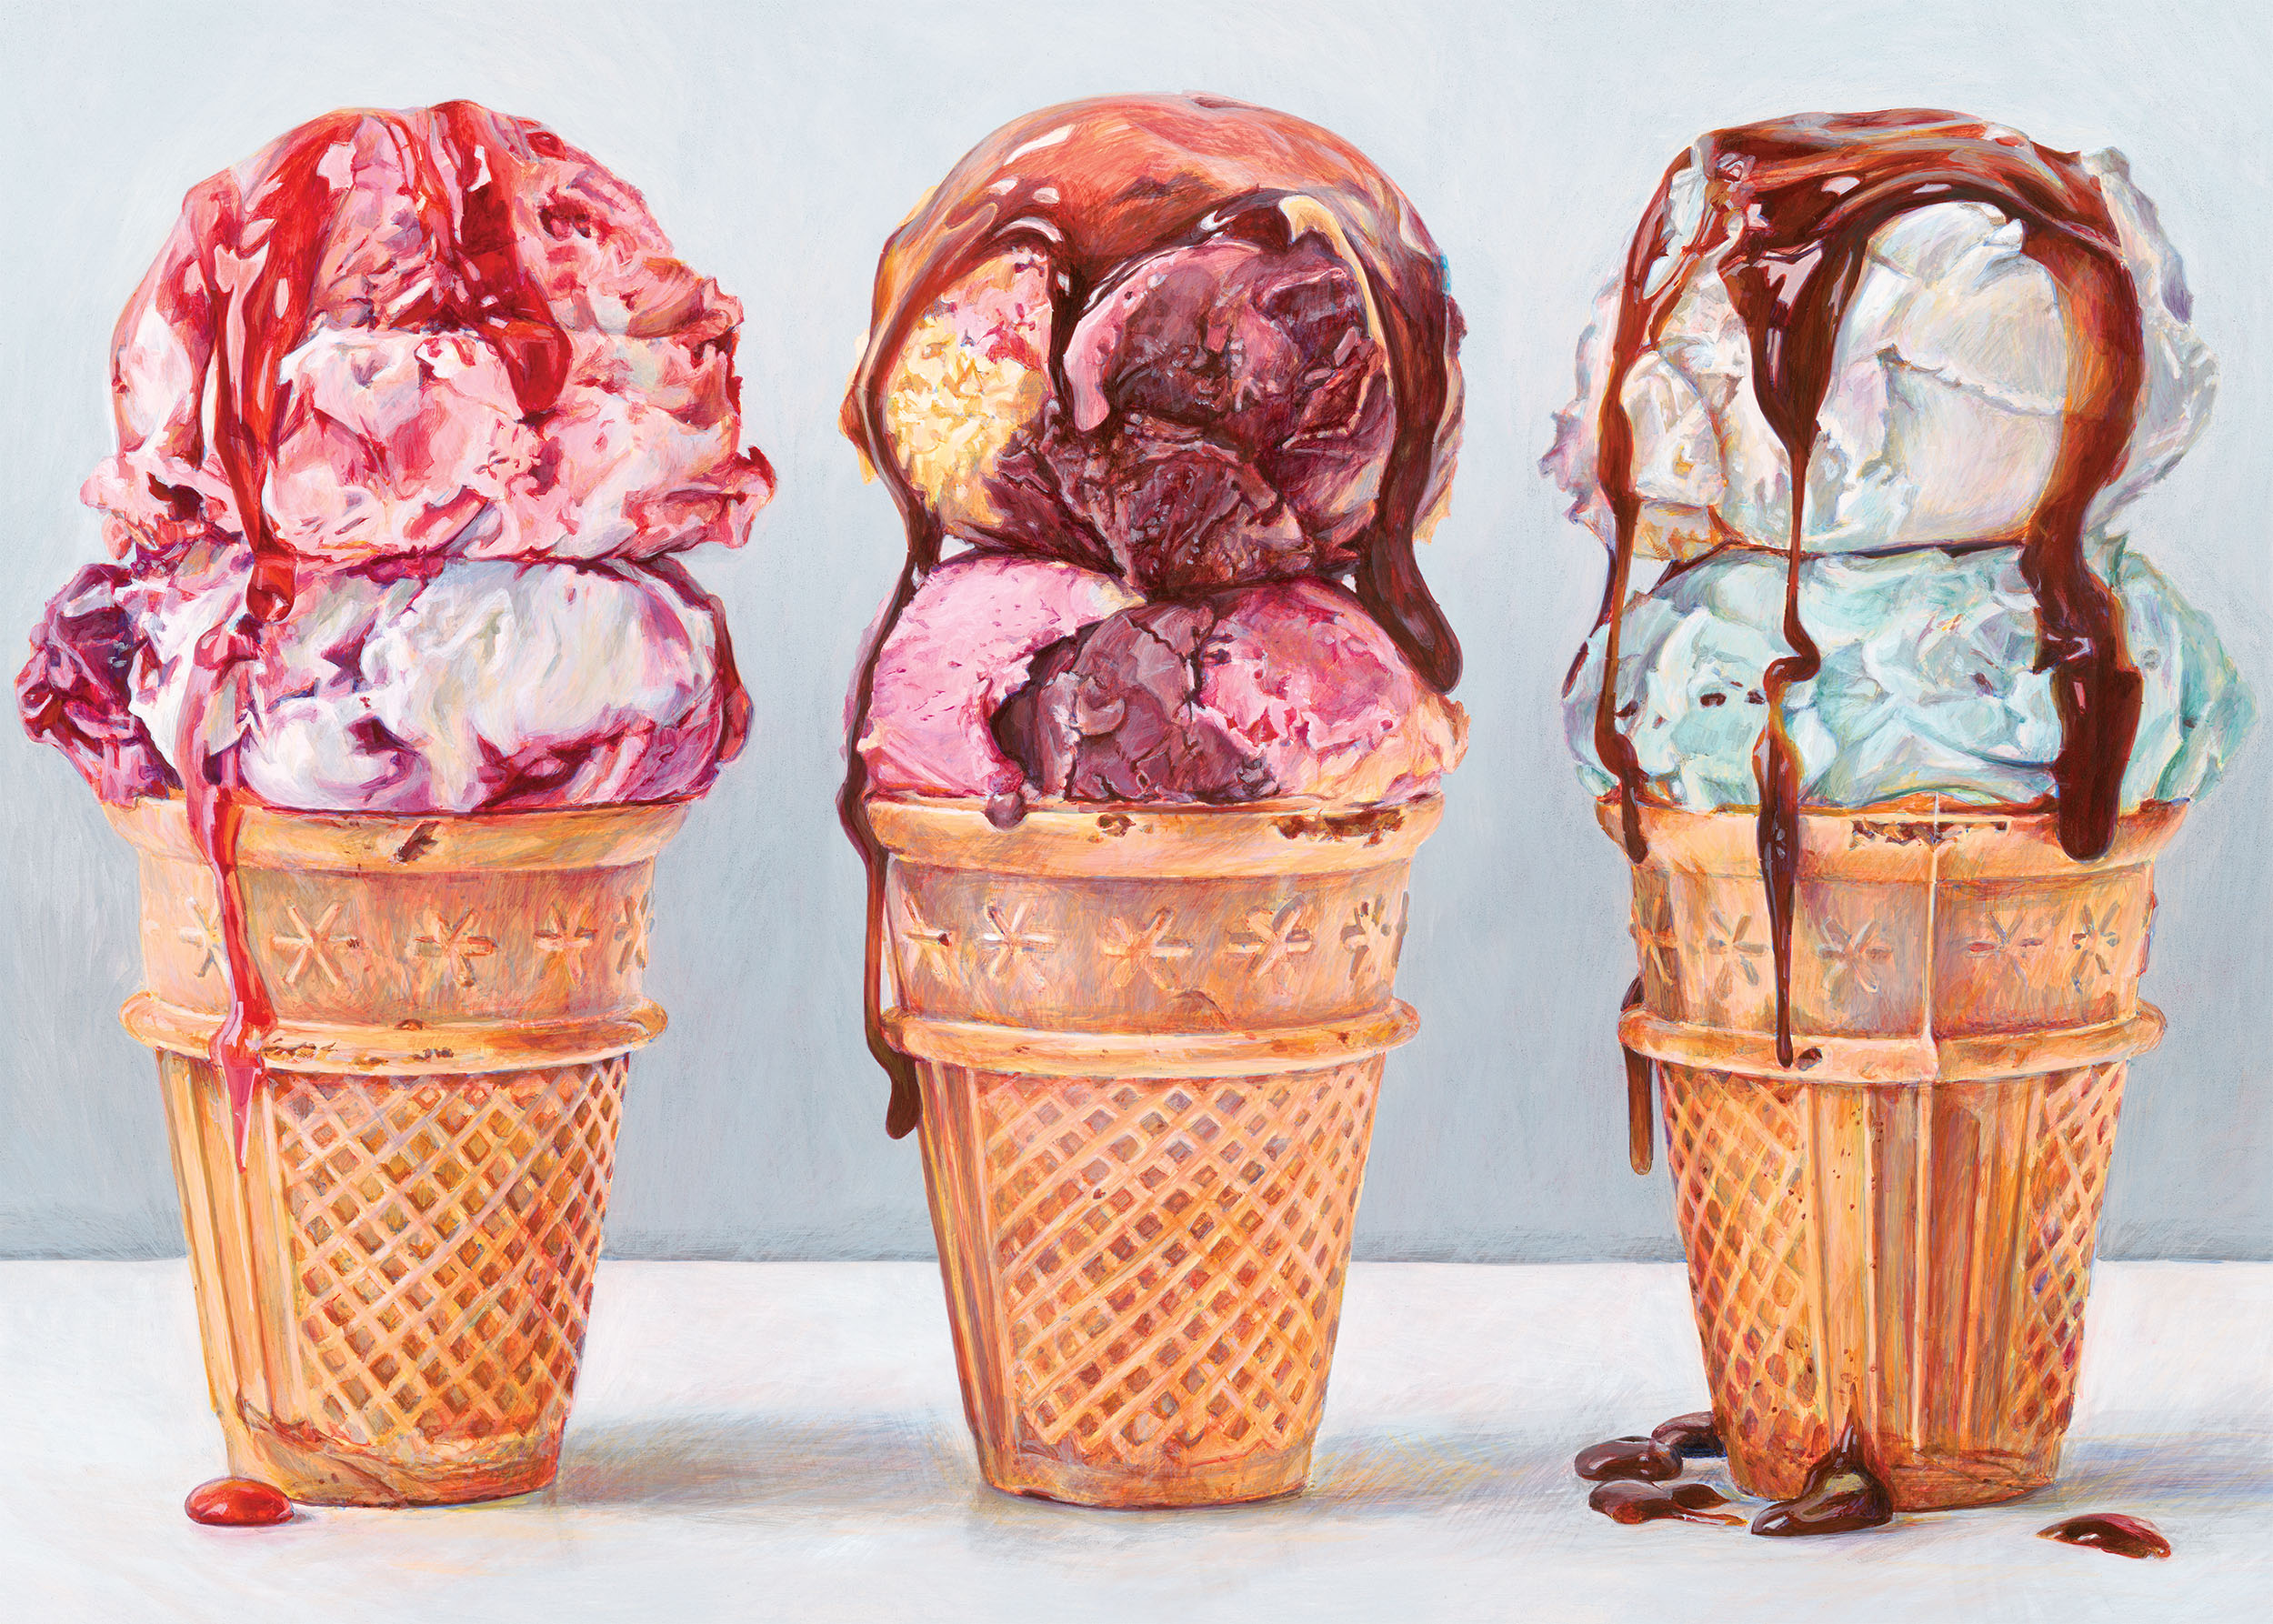 Ice Cream Cones Food and Drink Jigsaw Puzzle